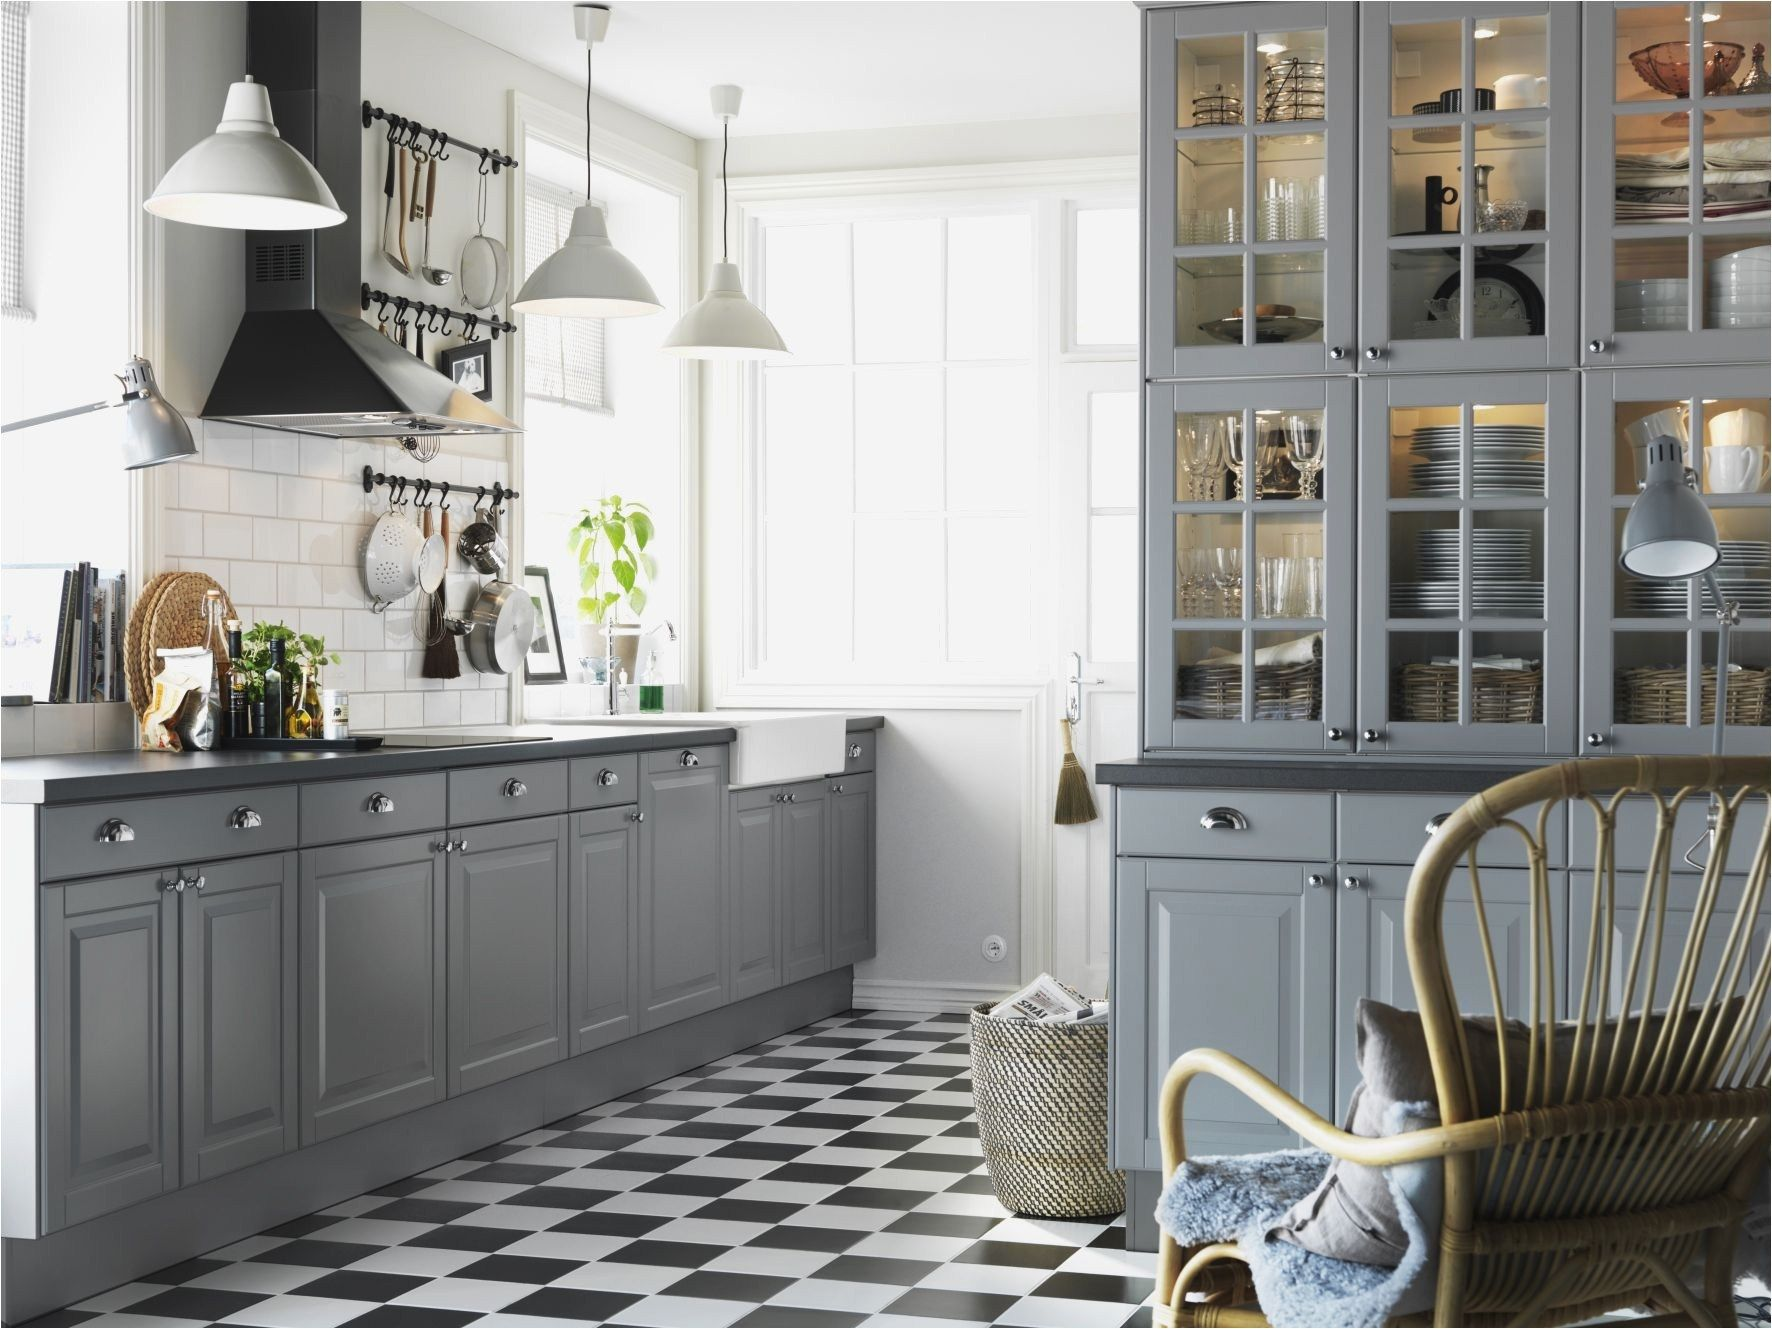 10+ Cuisine style campagne chic ikea ideas